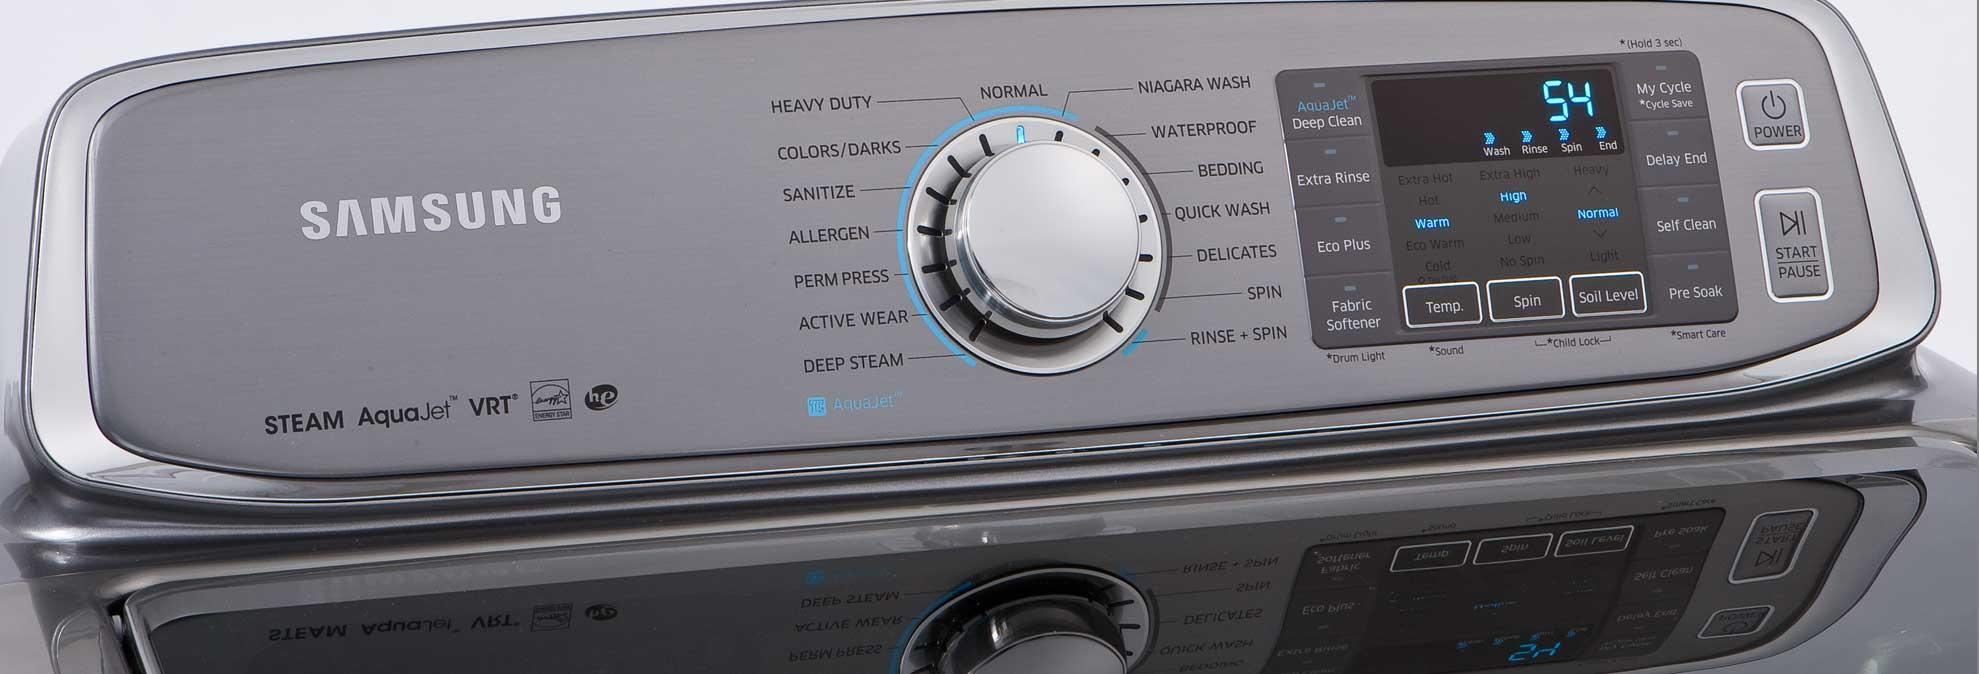 Image Result For Samsung Washer And Dryers Re